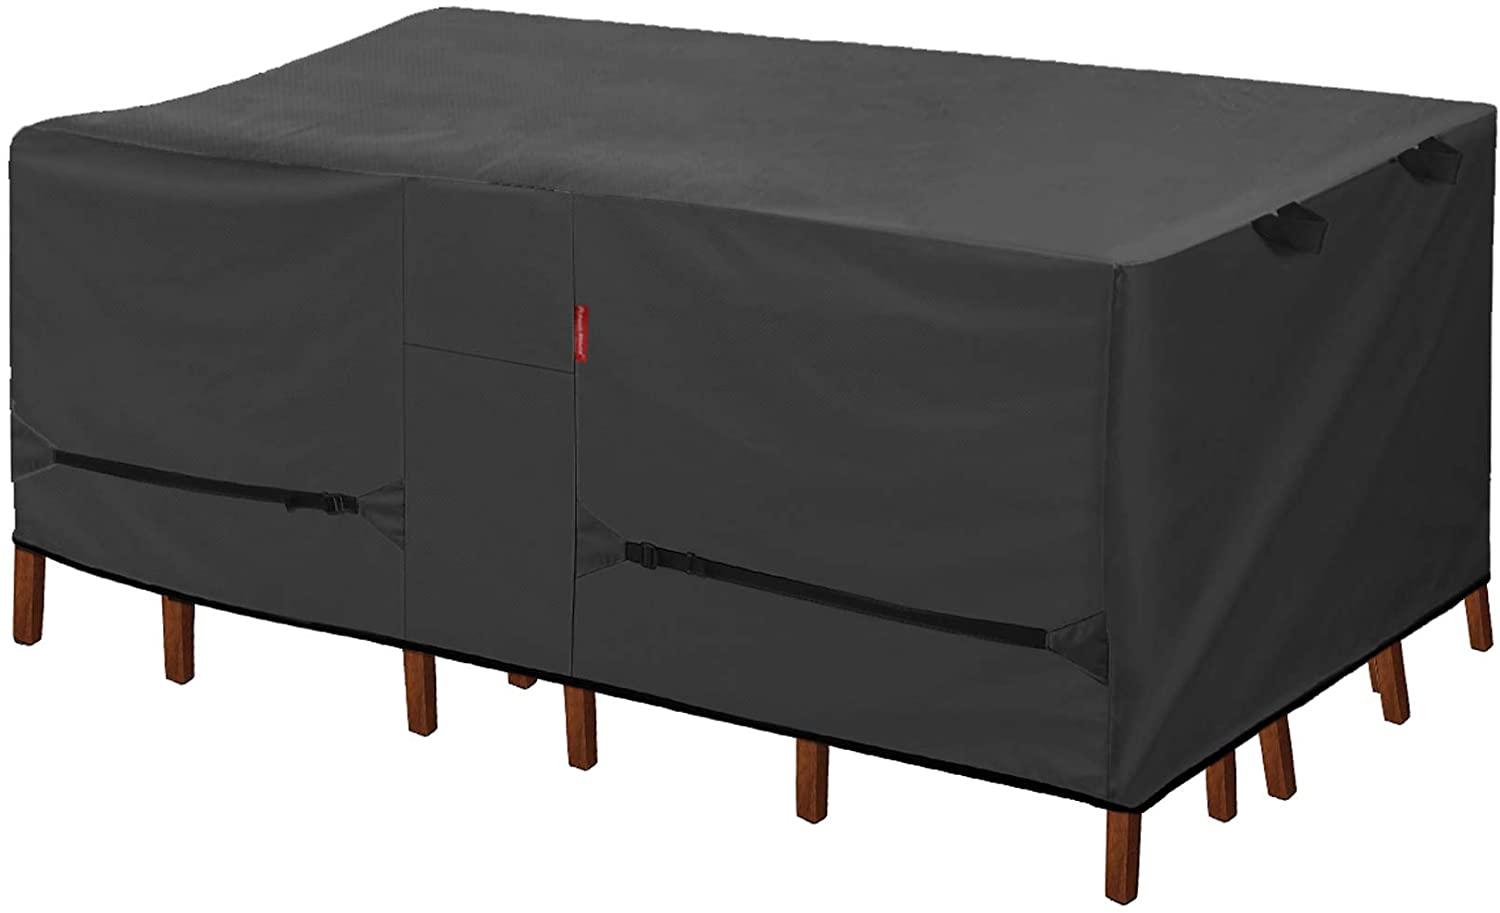 Porch Shield Patio Table Cover - Waterproof Outdoor Dining Table and Chairs Furniture Set Cover Rectangular - 108 x 70 inch, Black